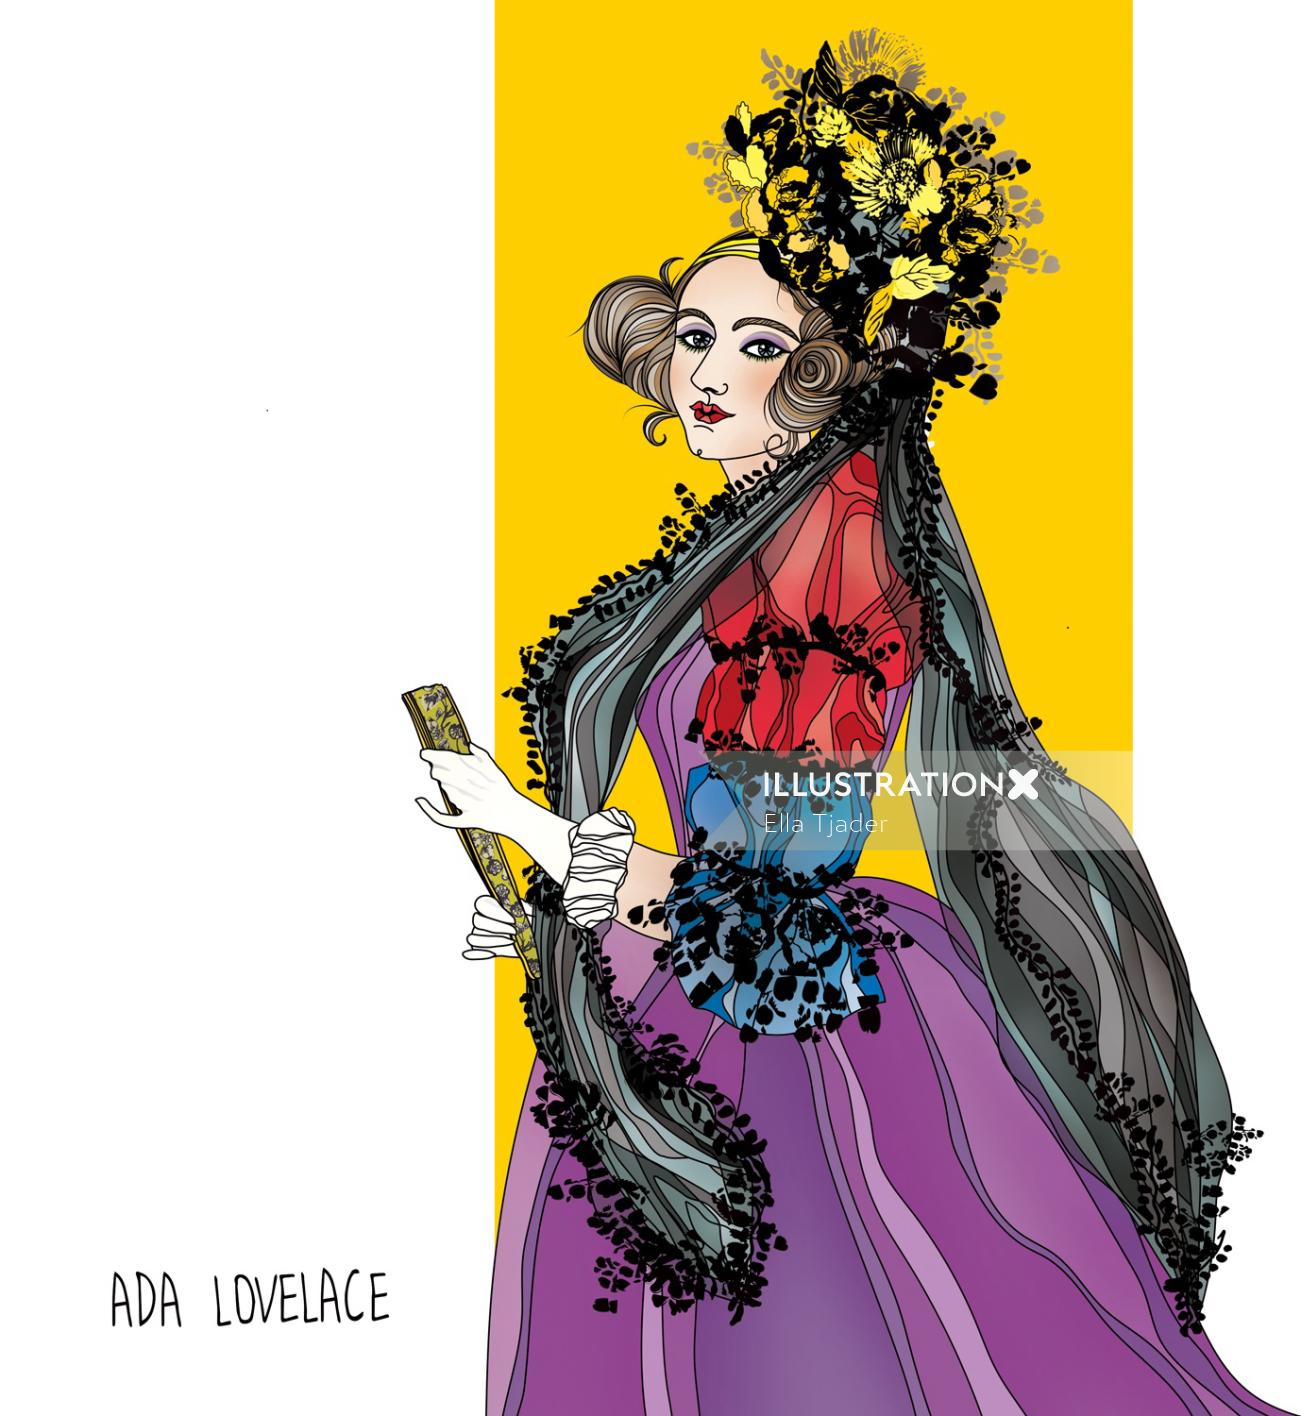 Ada Lovelace digital art for Fiercely Female 2019 calendar